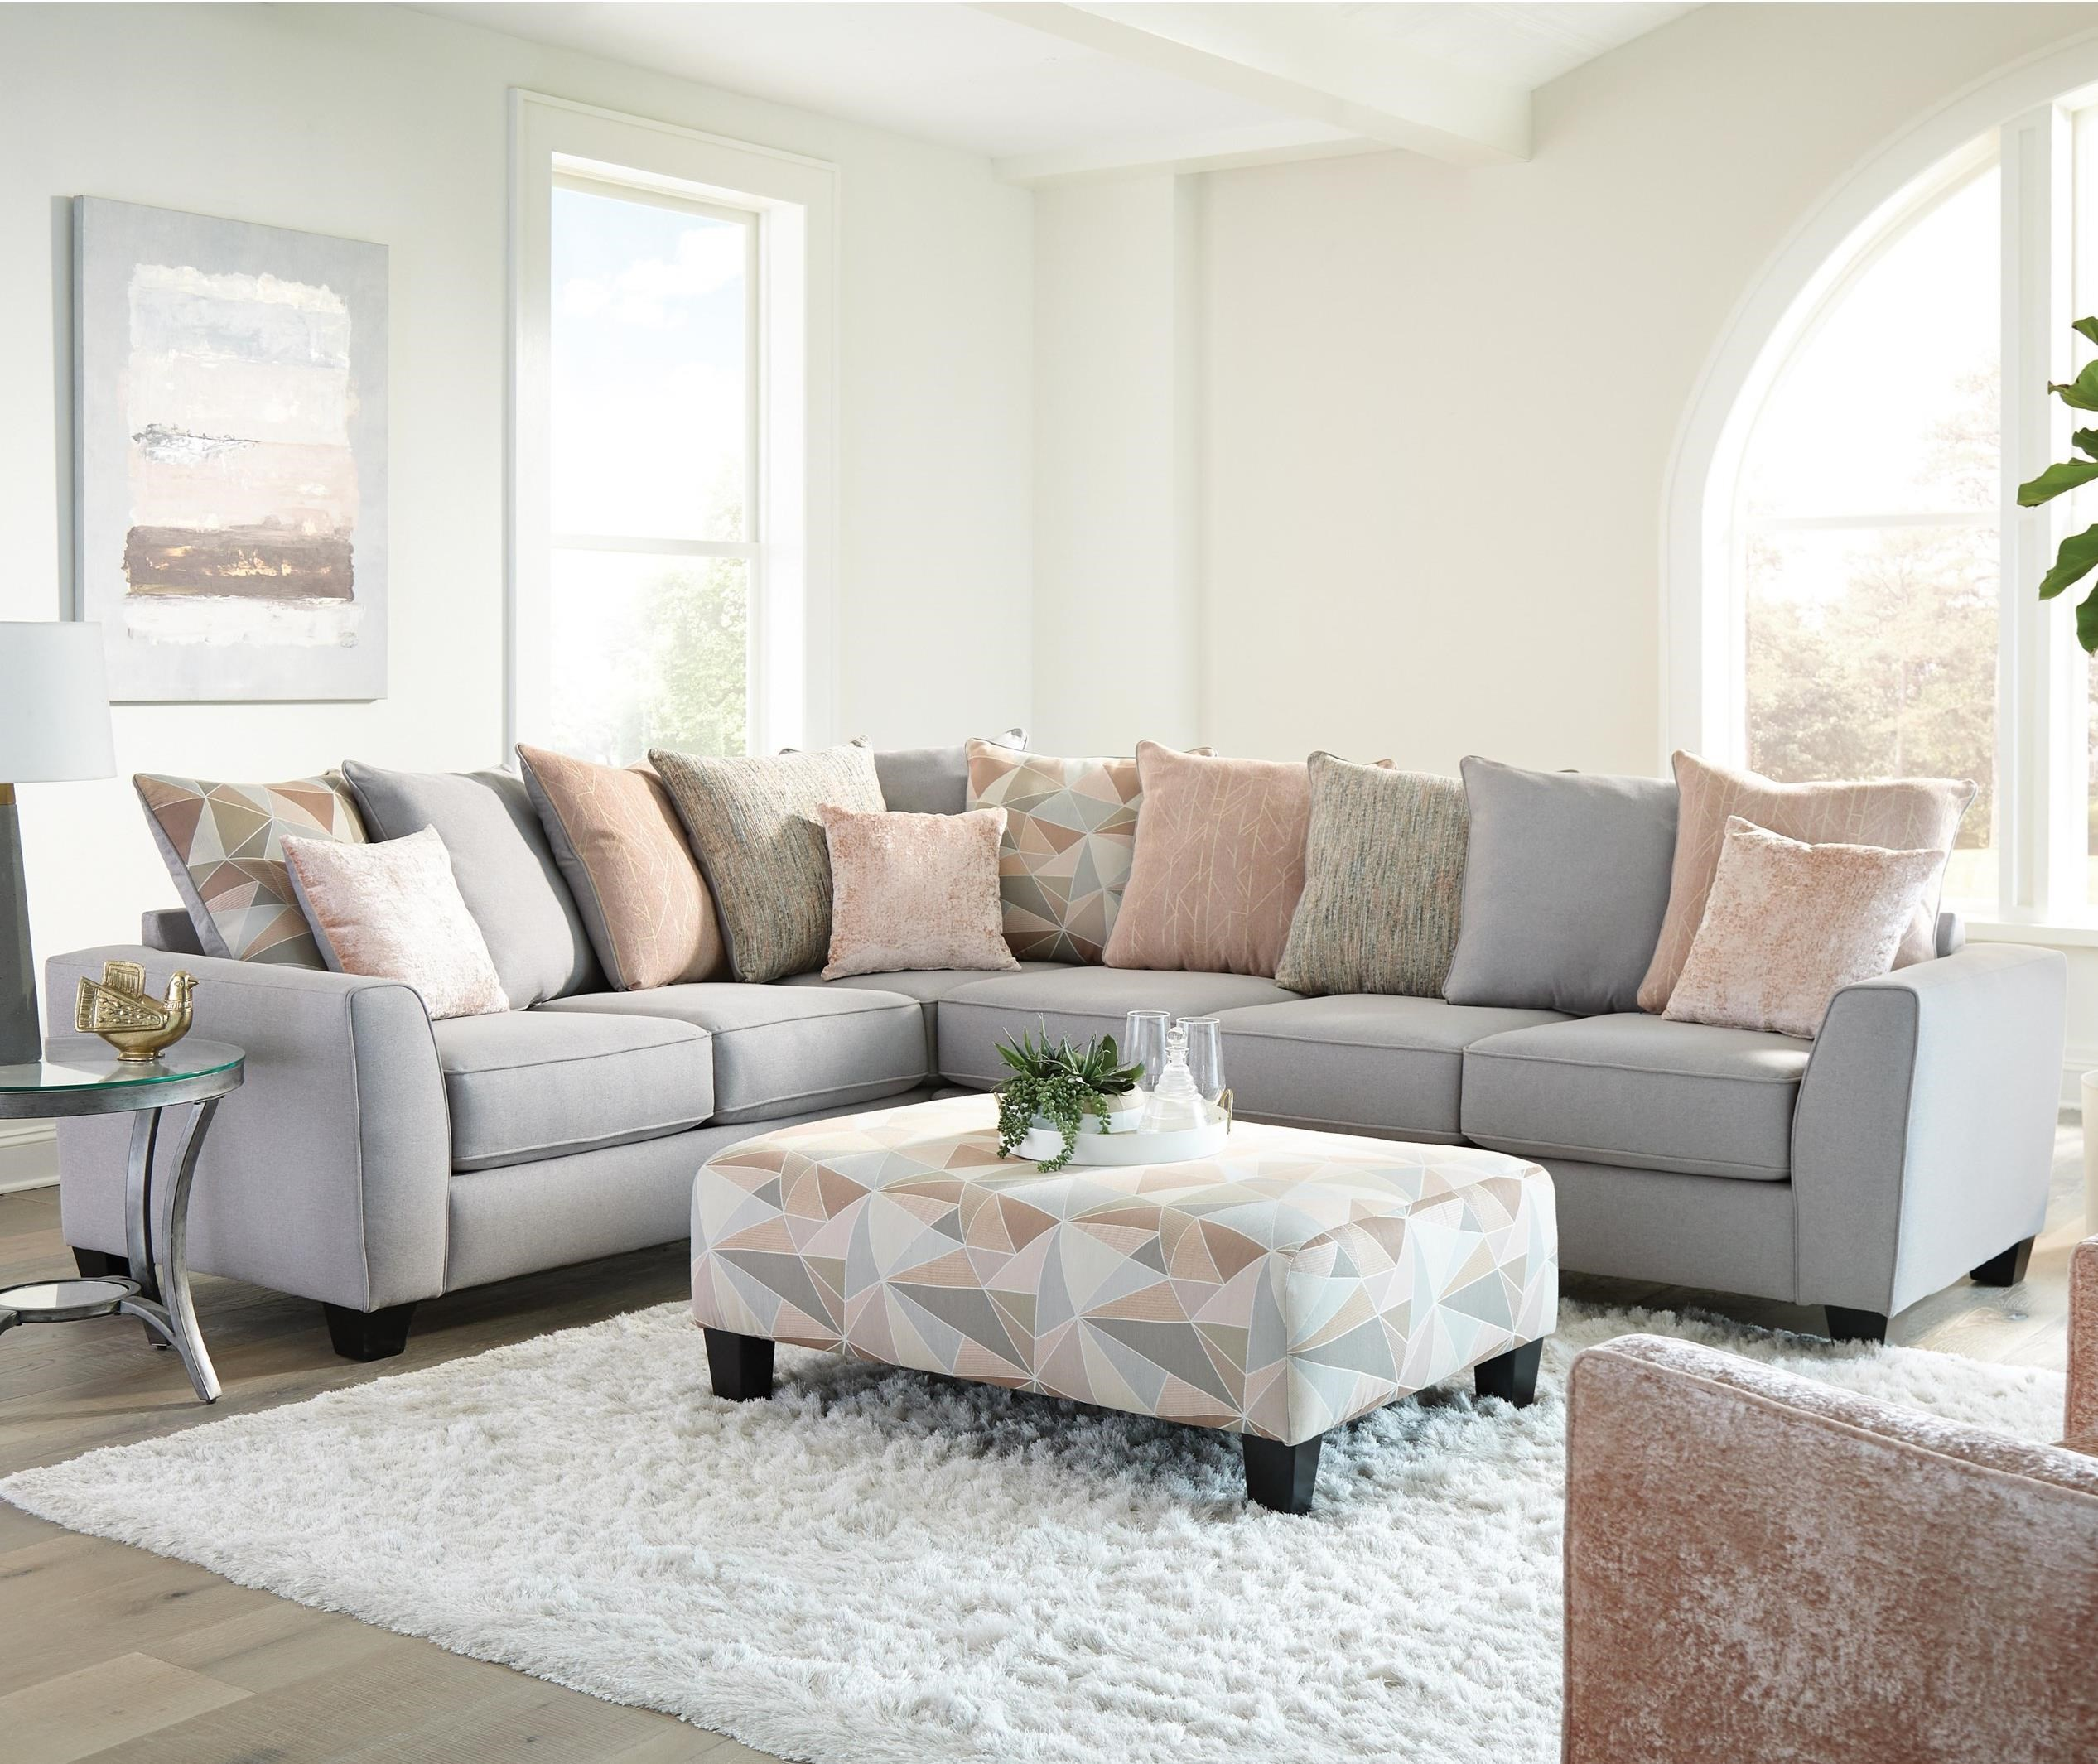 Remarkable Contemporary 5 Seat Sectional Sofa With 12 Pillows By Bralicious Painted Fabric Chair Ideas Braliciousco